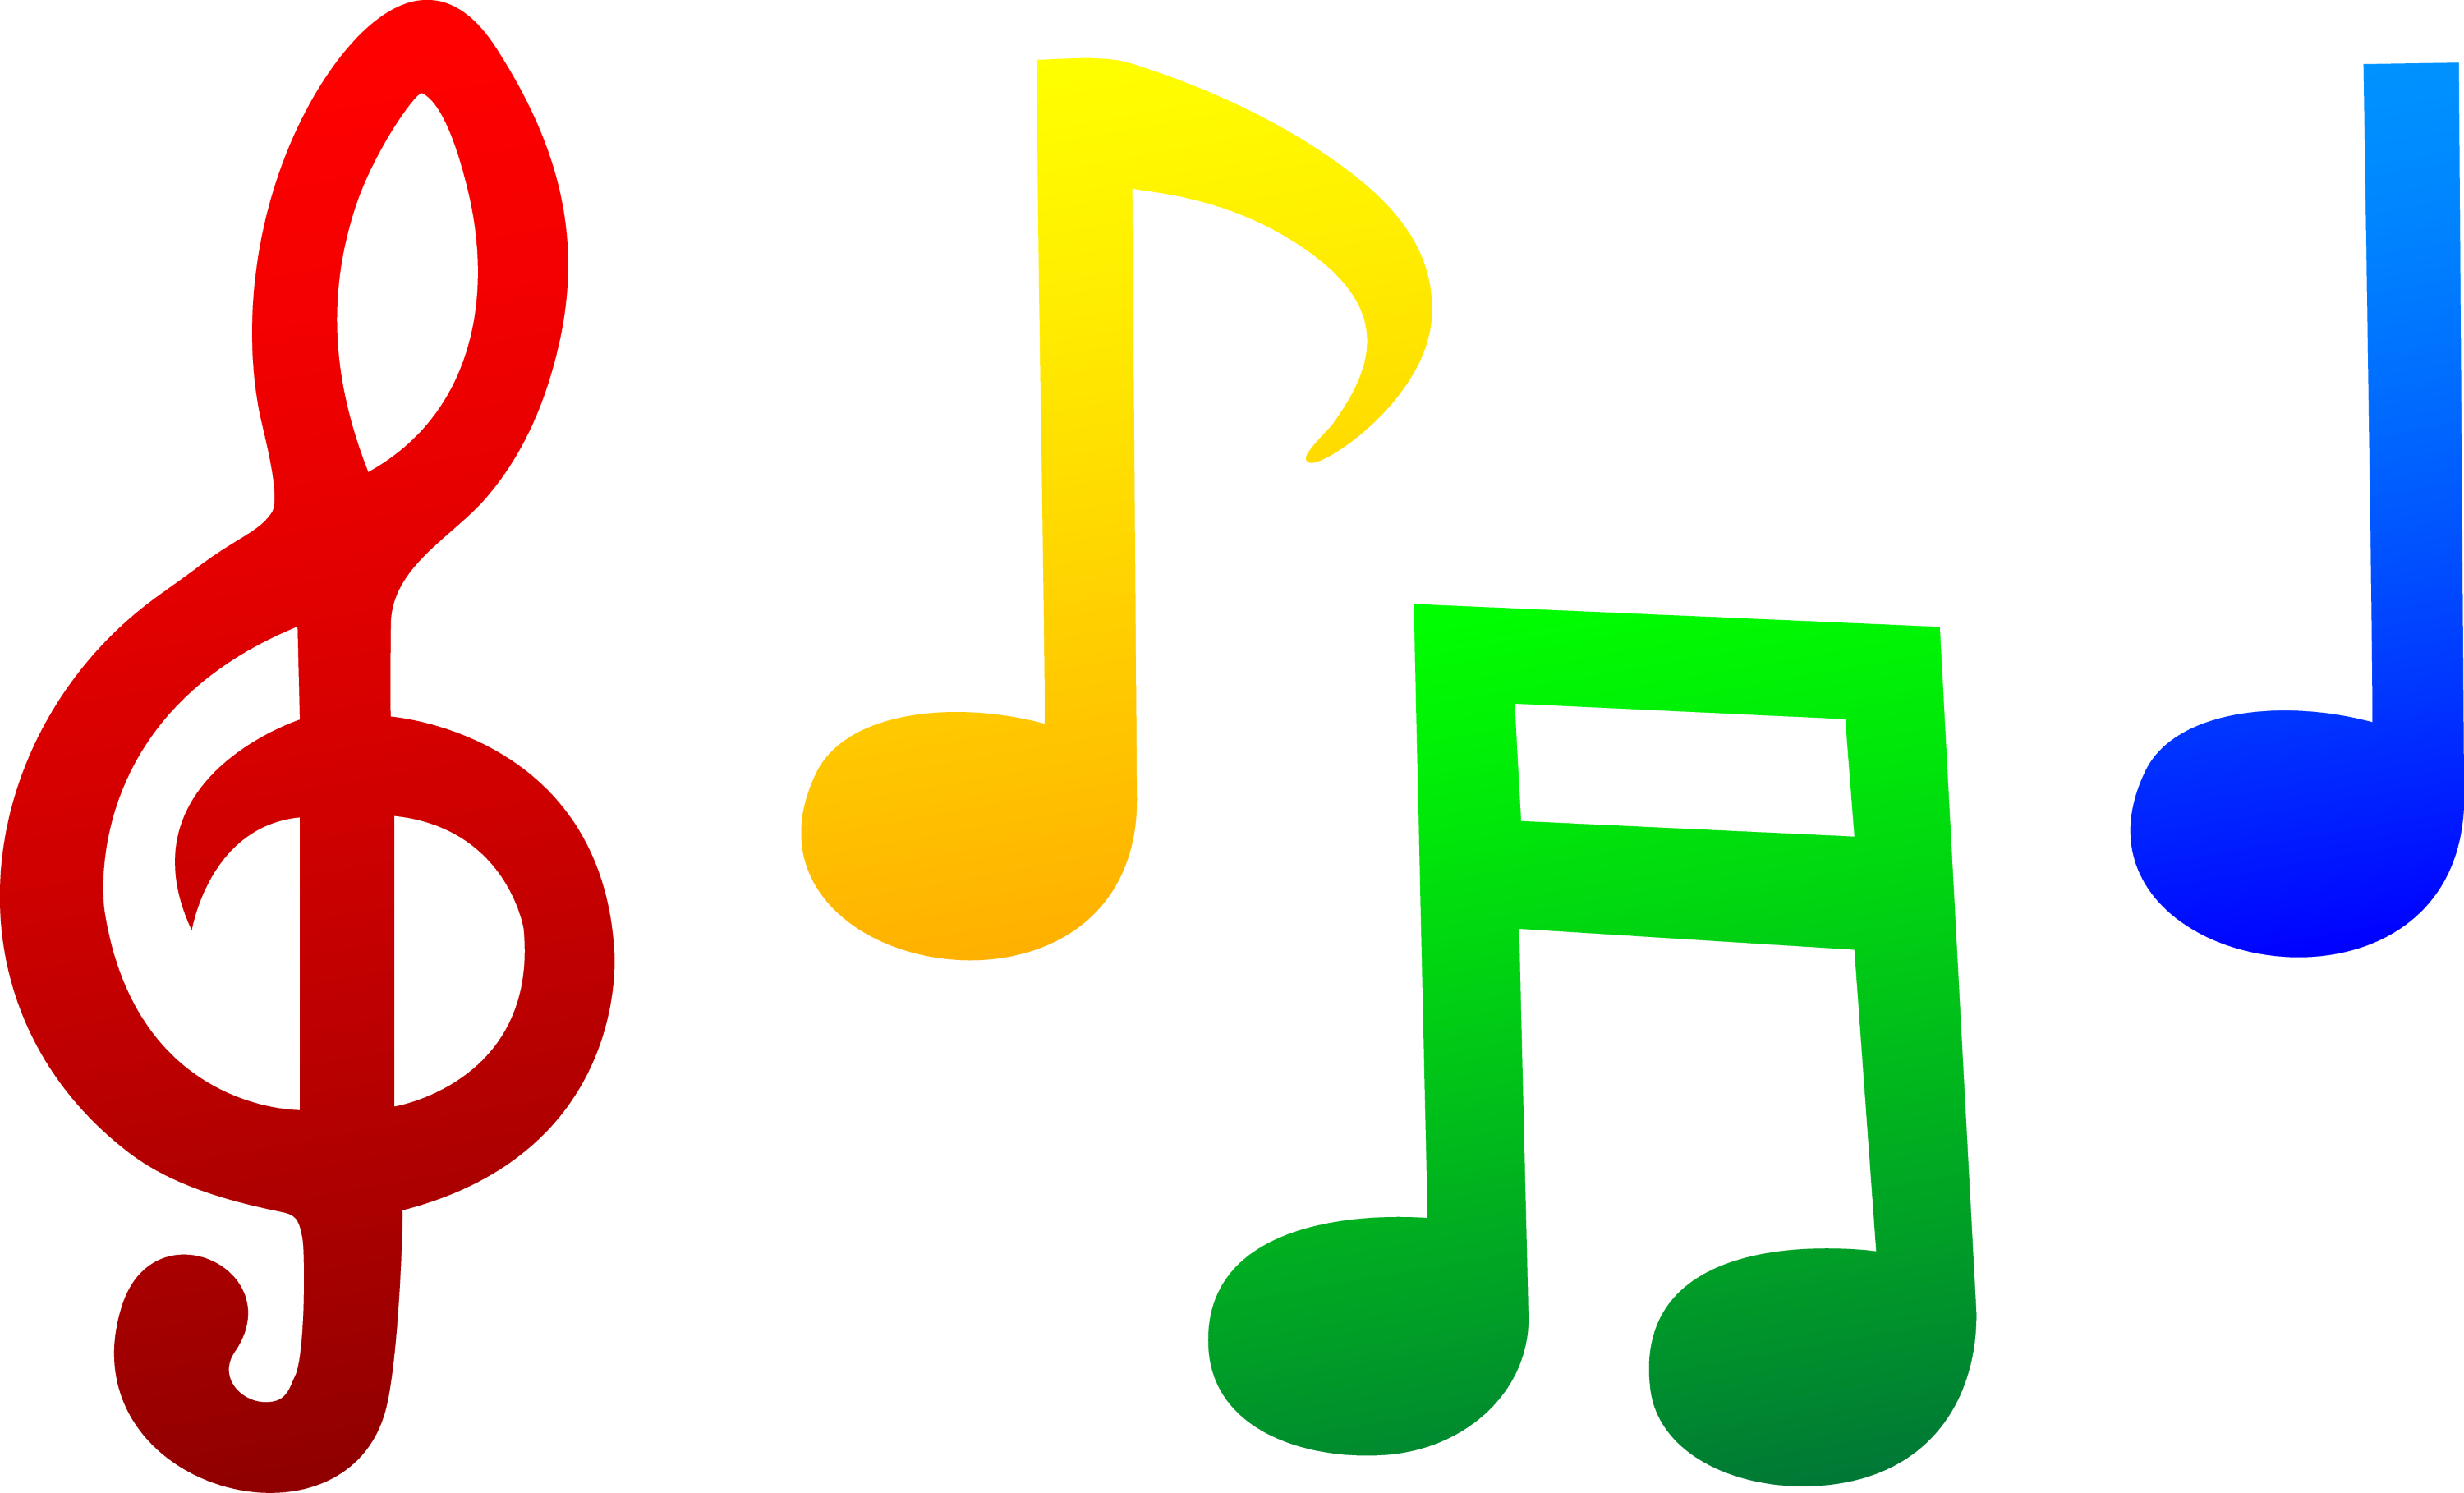 free clipart music note symbol - photo #7